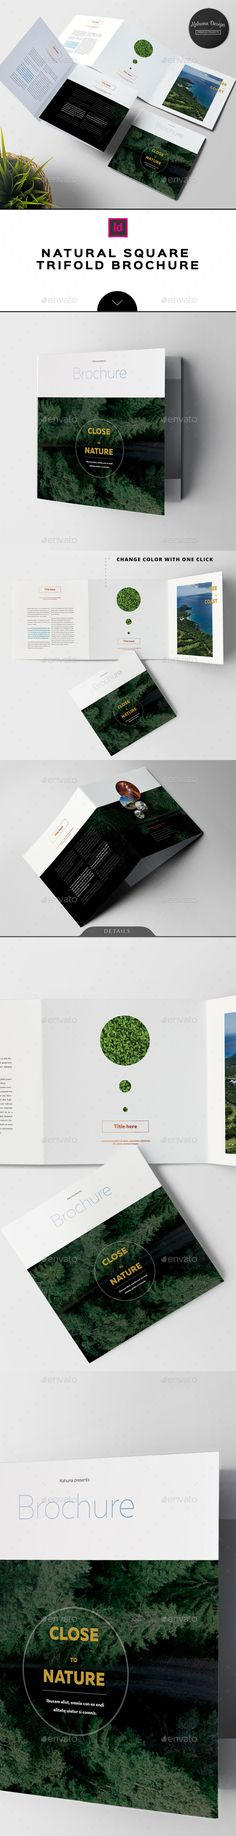 Natural Square Trifold Brochure  — InDesign Template #20x20 #folder • Download ➝ https://graphicriver.net/item/natural-square-trifold-brochure/18475731?ref=pxcr